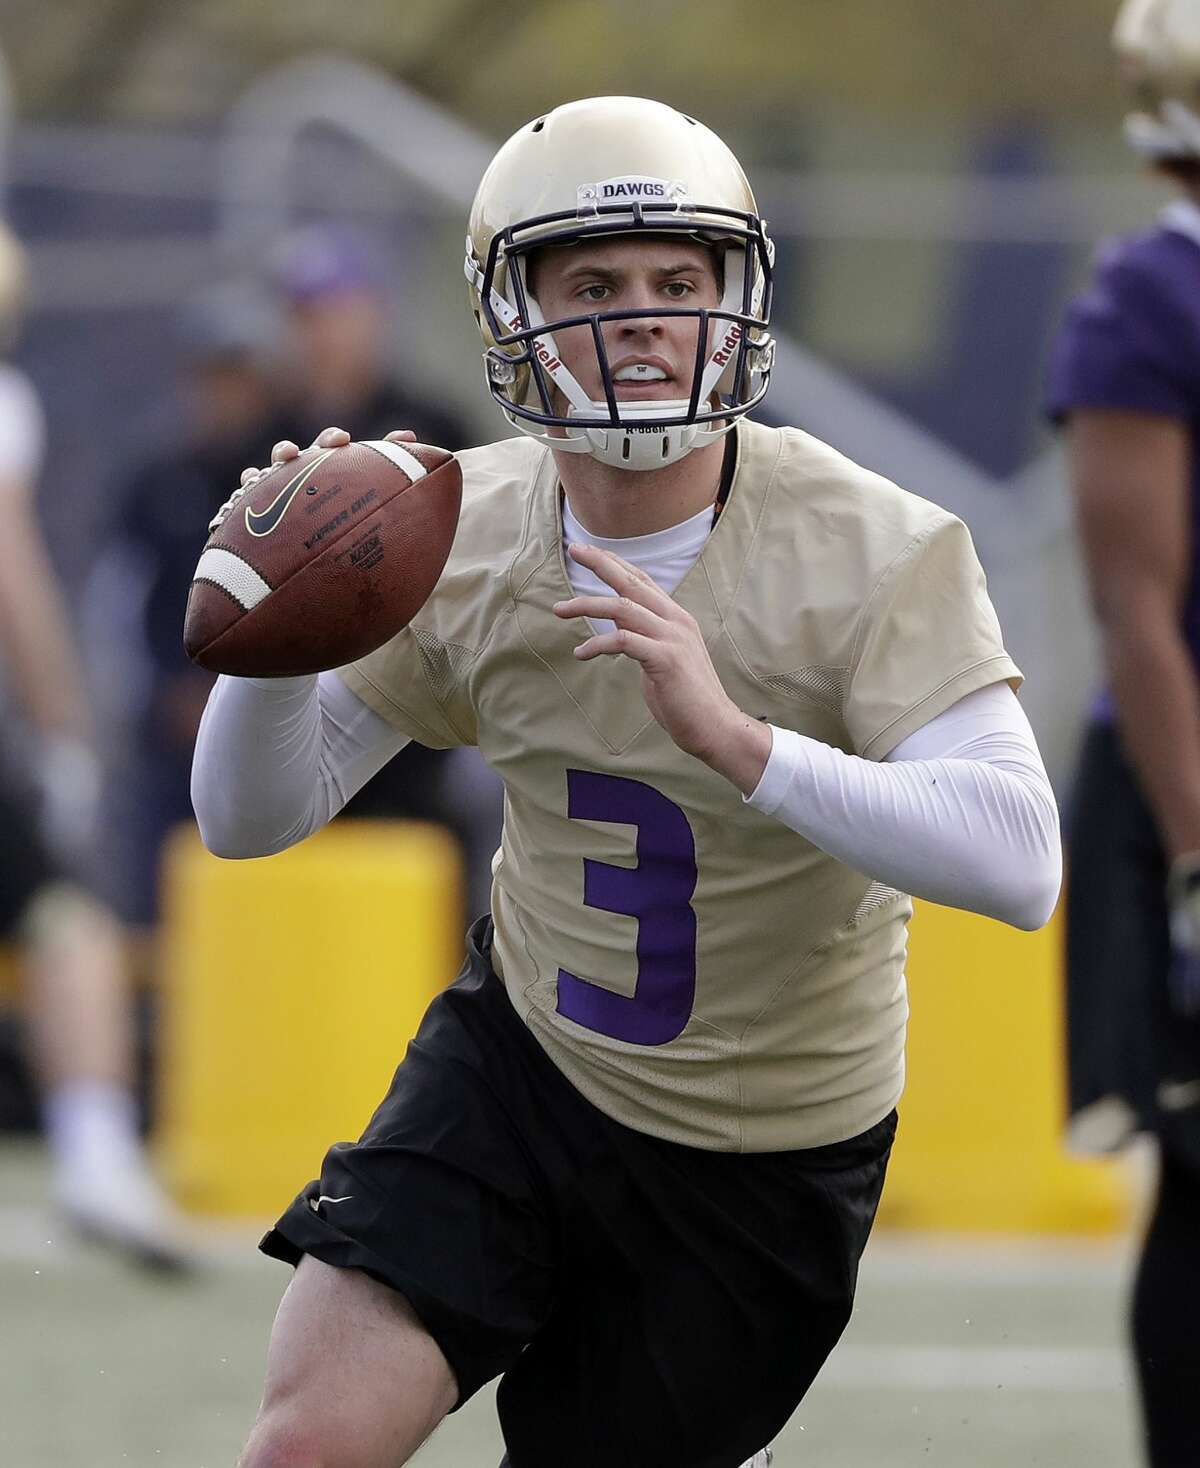 Washington quarterback Jake Browning looks to pass at the first practice of spring football for the NCAA college team Wednesday, March 28, 2018, in Seattle. As the Wall Street Journal points out, he's not the only Jake who's on Husky field. (Click through to see more alumni from UW)